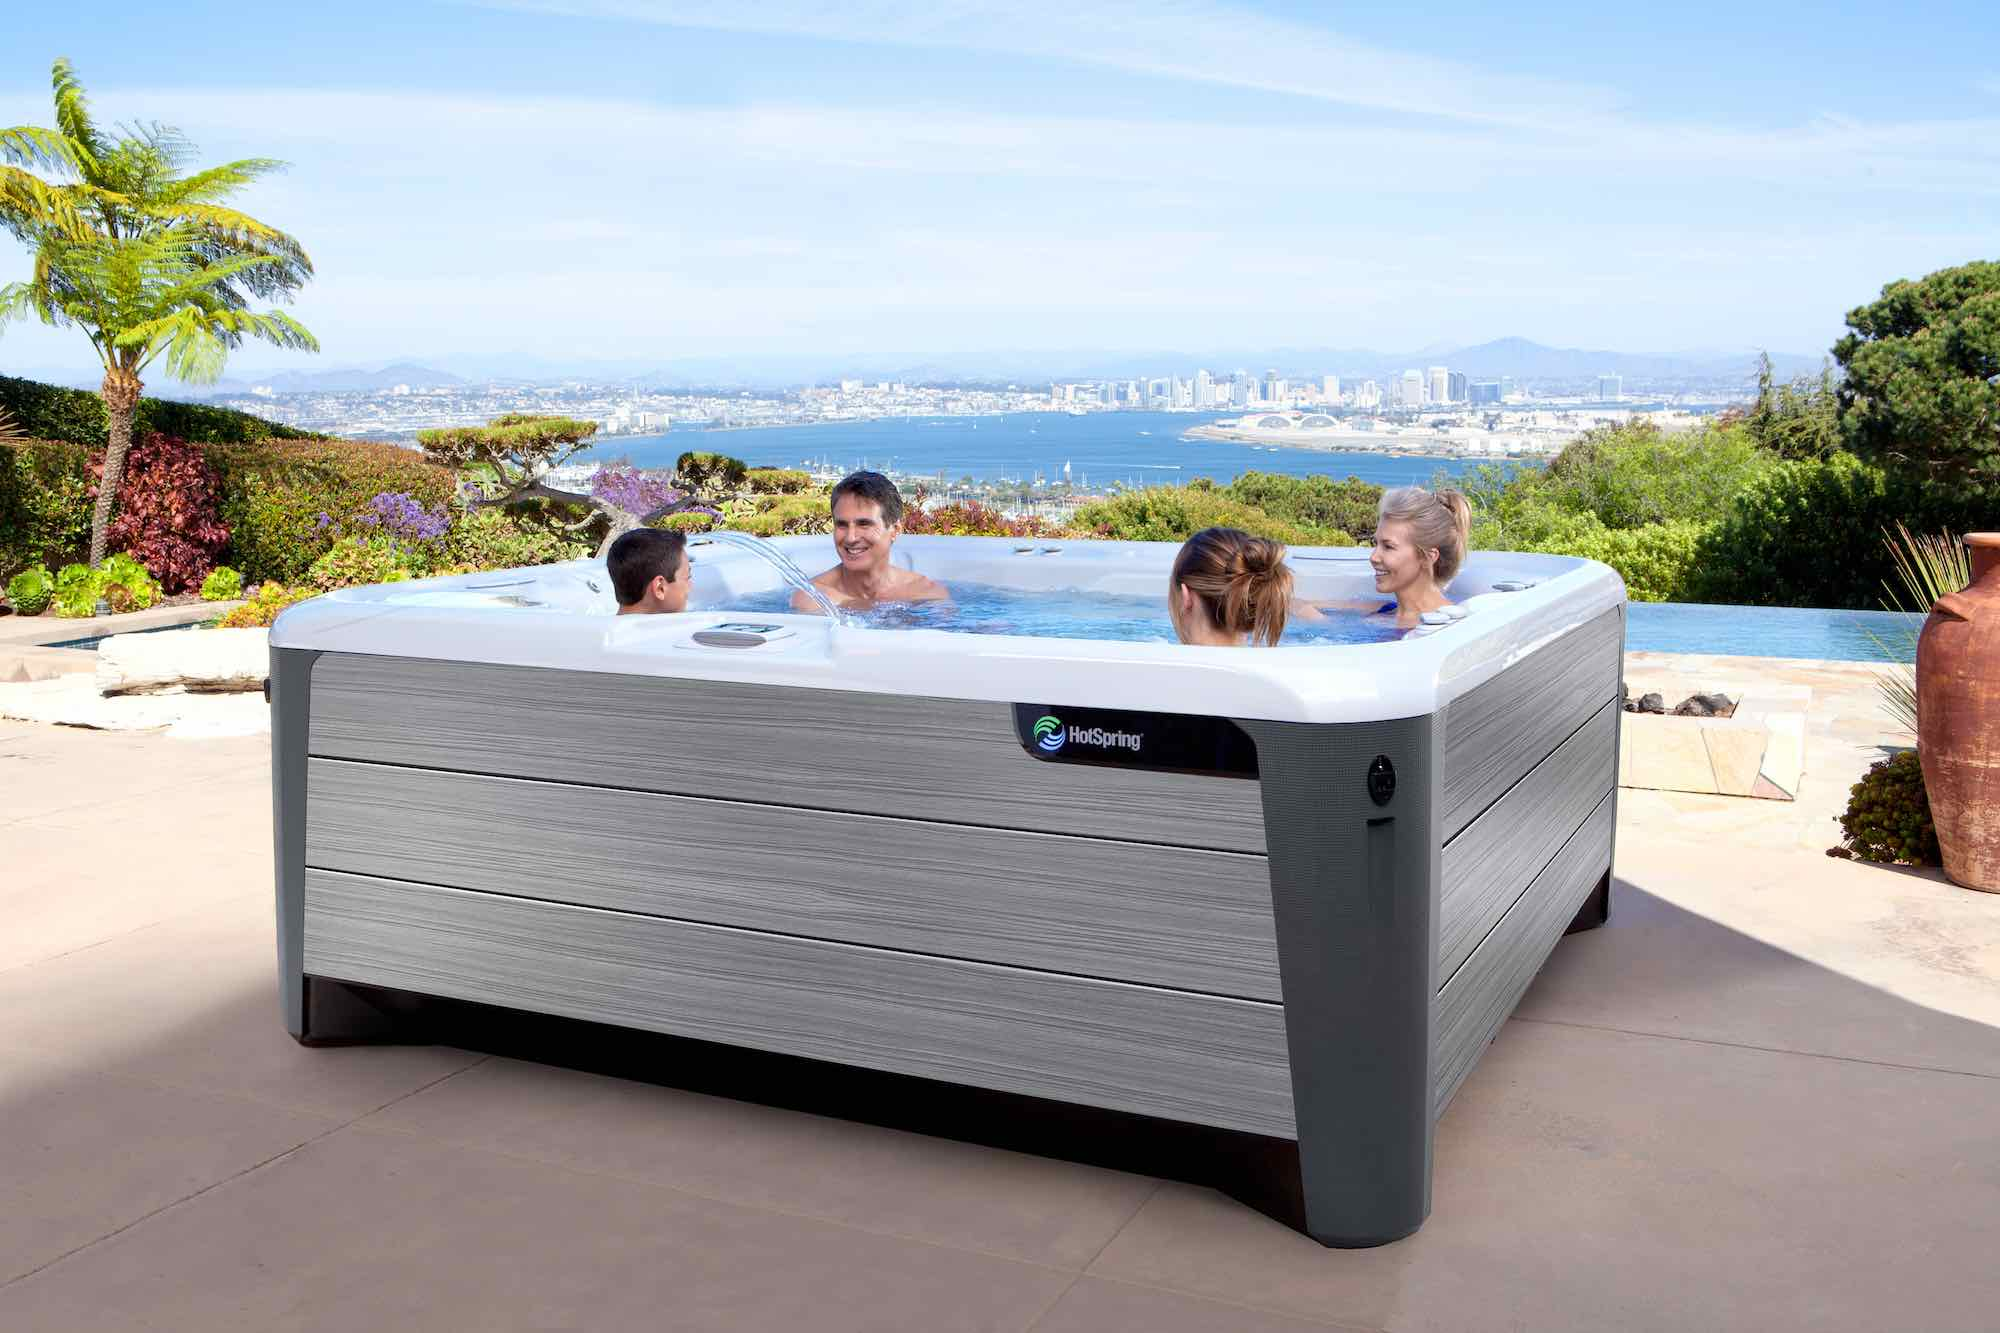 Hot Spring Spas Grandee Hot Tub at Lifestyle Outdoor in Los Angeles, California